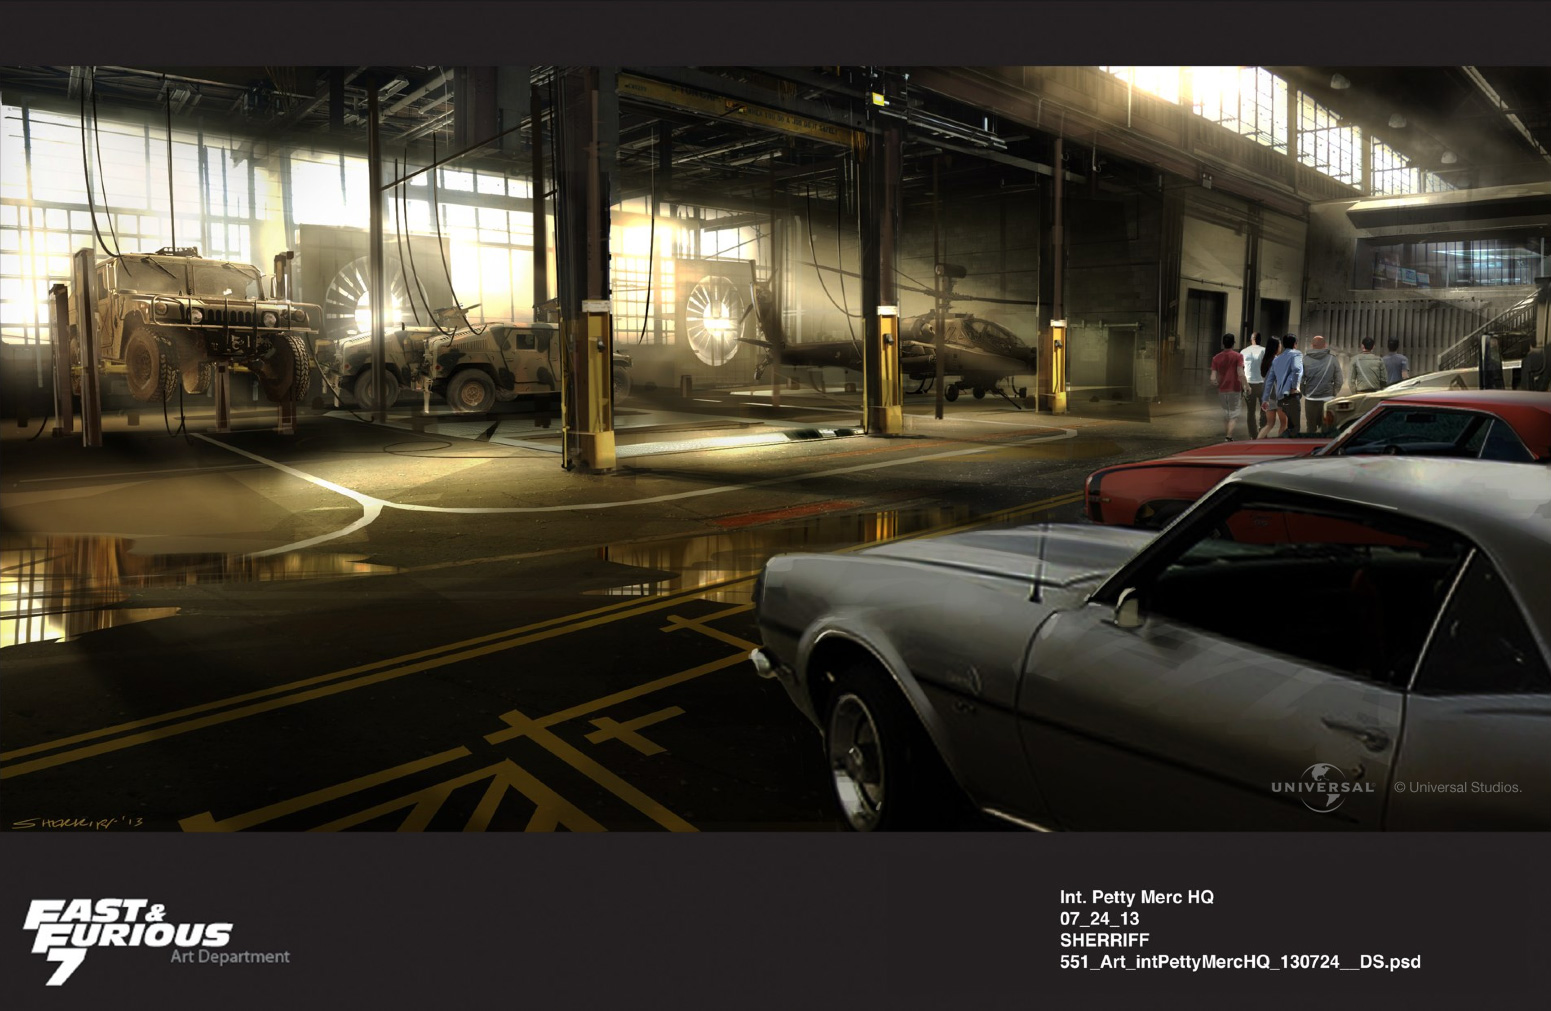 Furious 7 Concept Art by Dean Sherriff